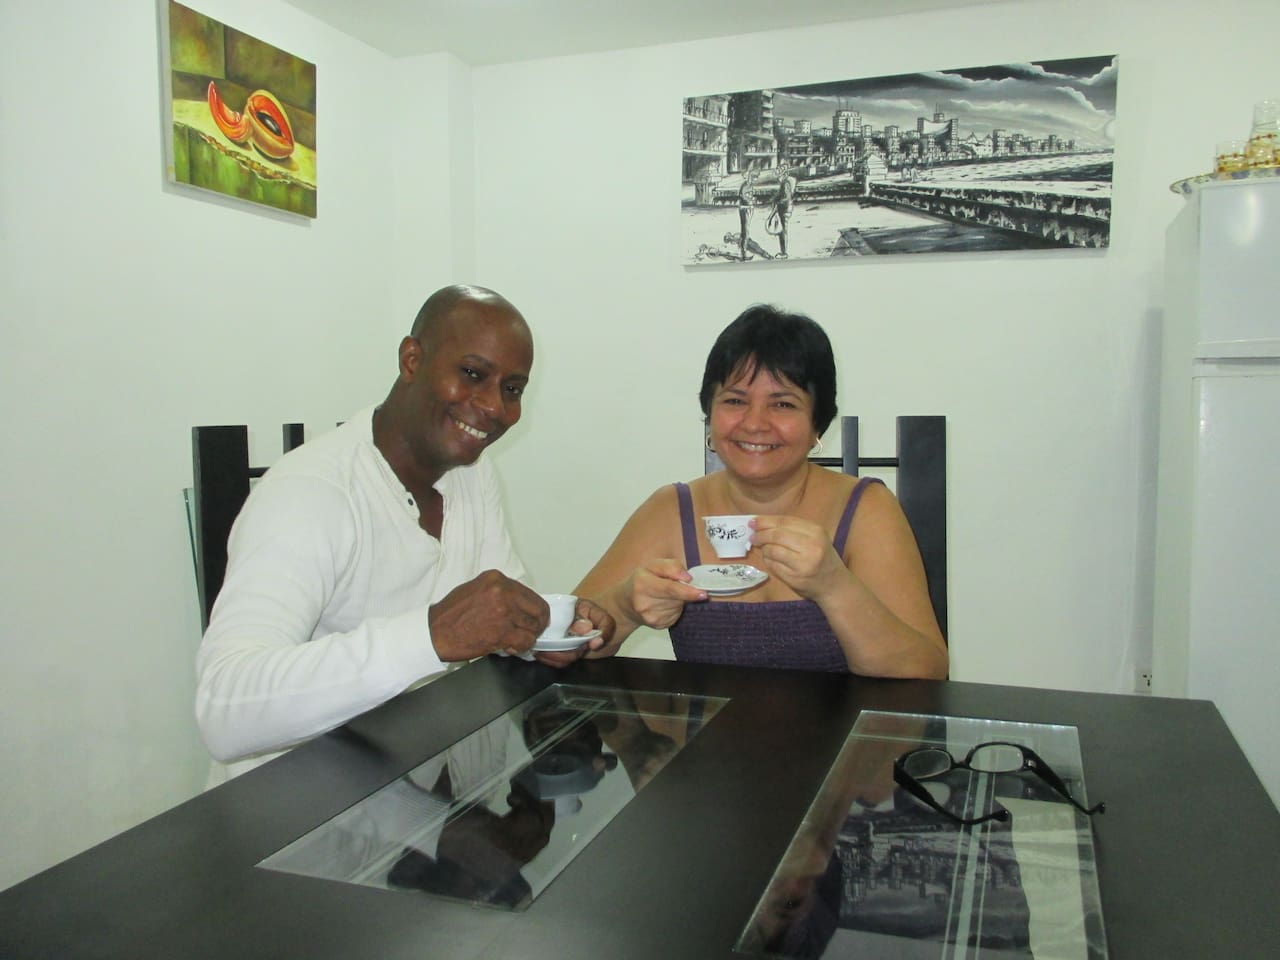 Enjoy a good coffee and the warmth of the Cuban Family in the company of your hosts Inés and Roly.